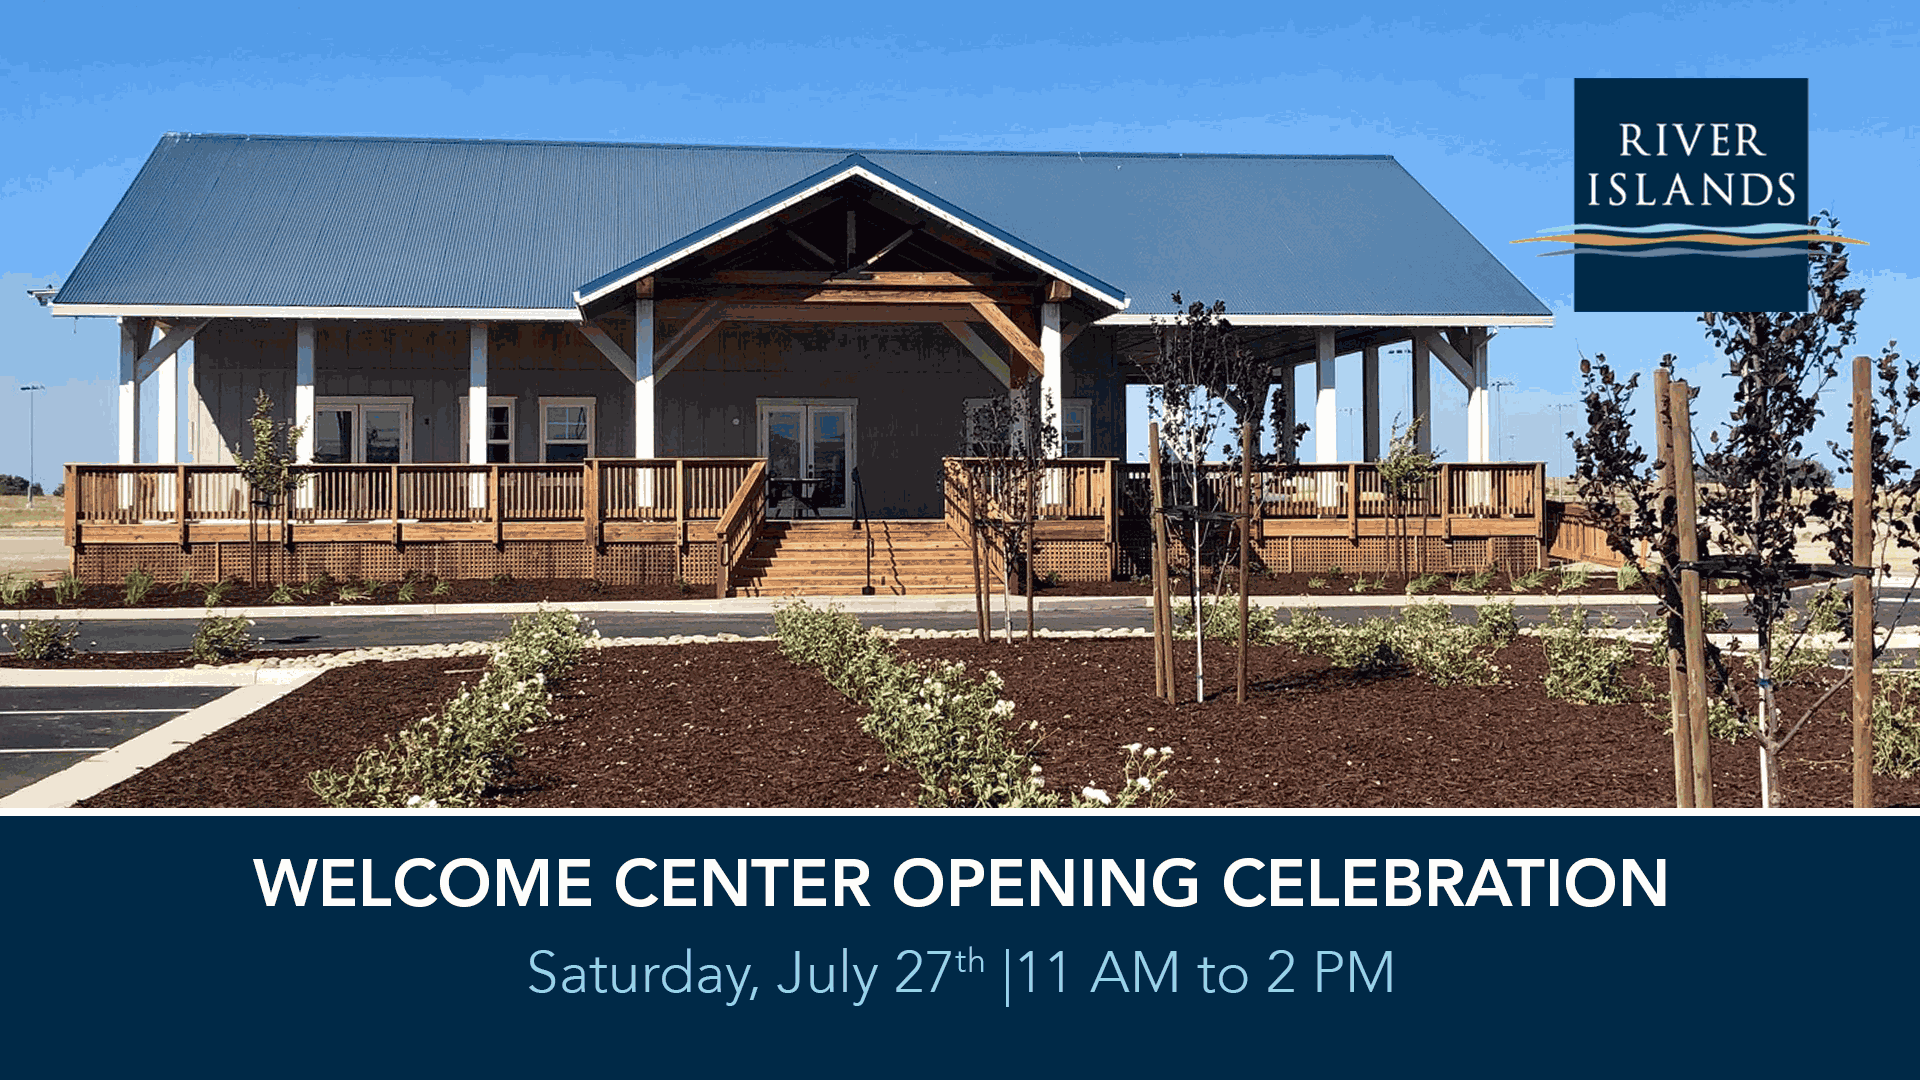 The Welcome Center's New Home in River Islands